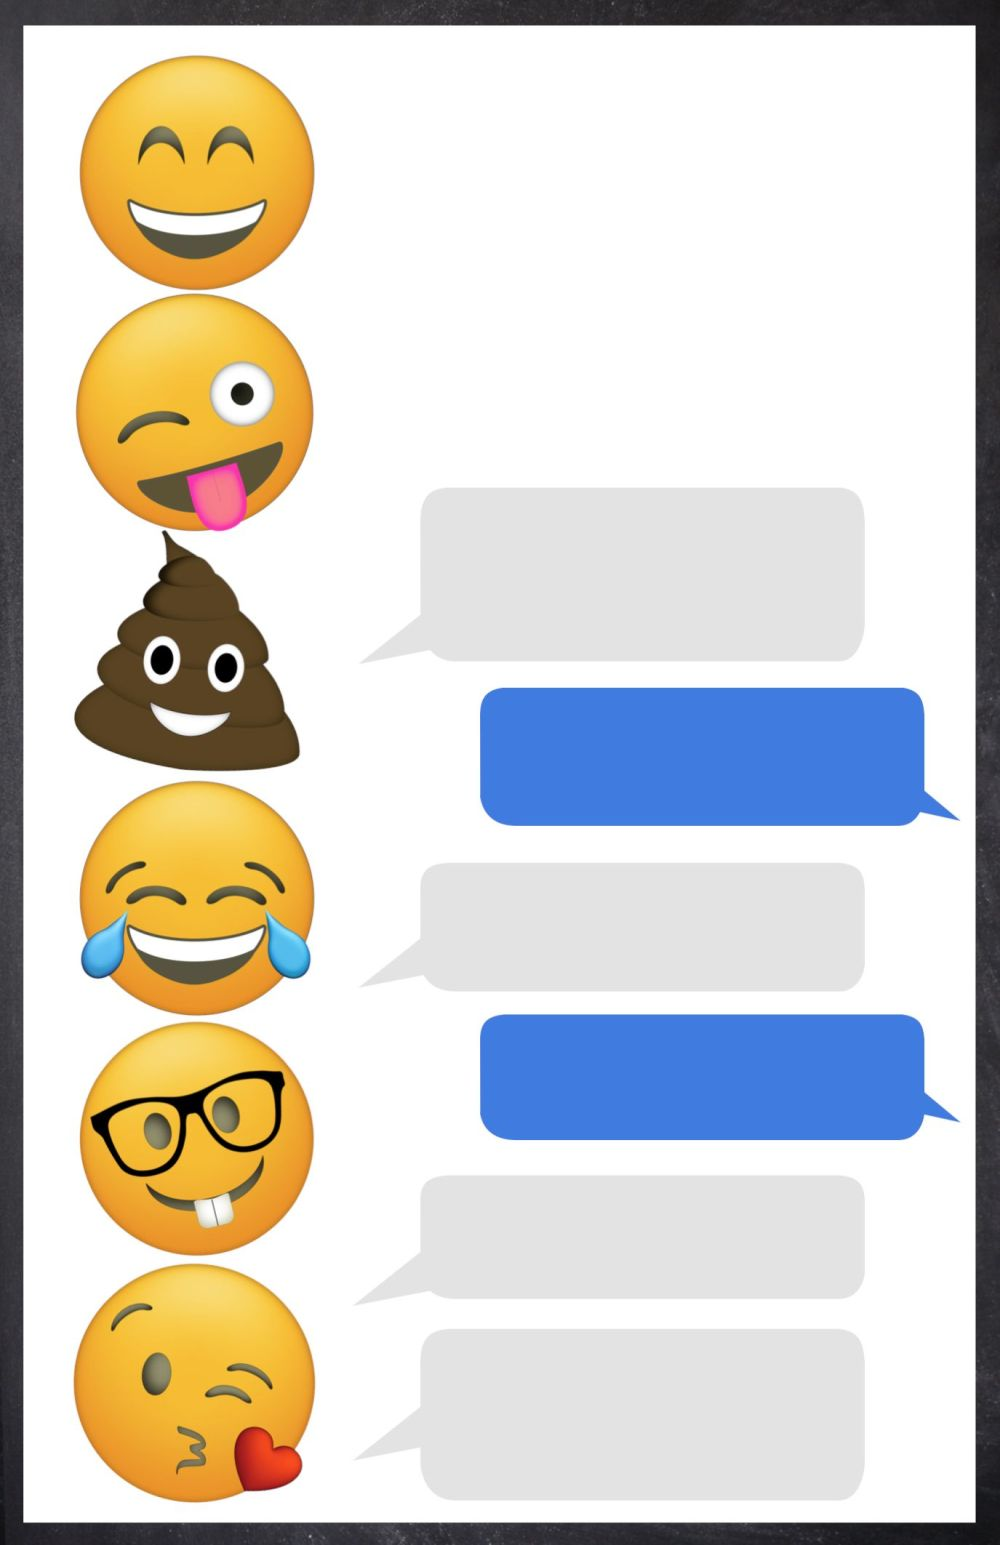 invitationemoji